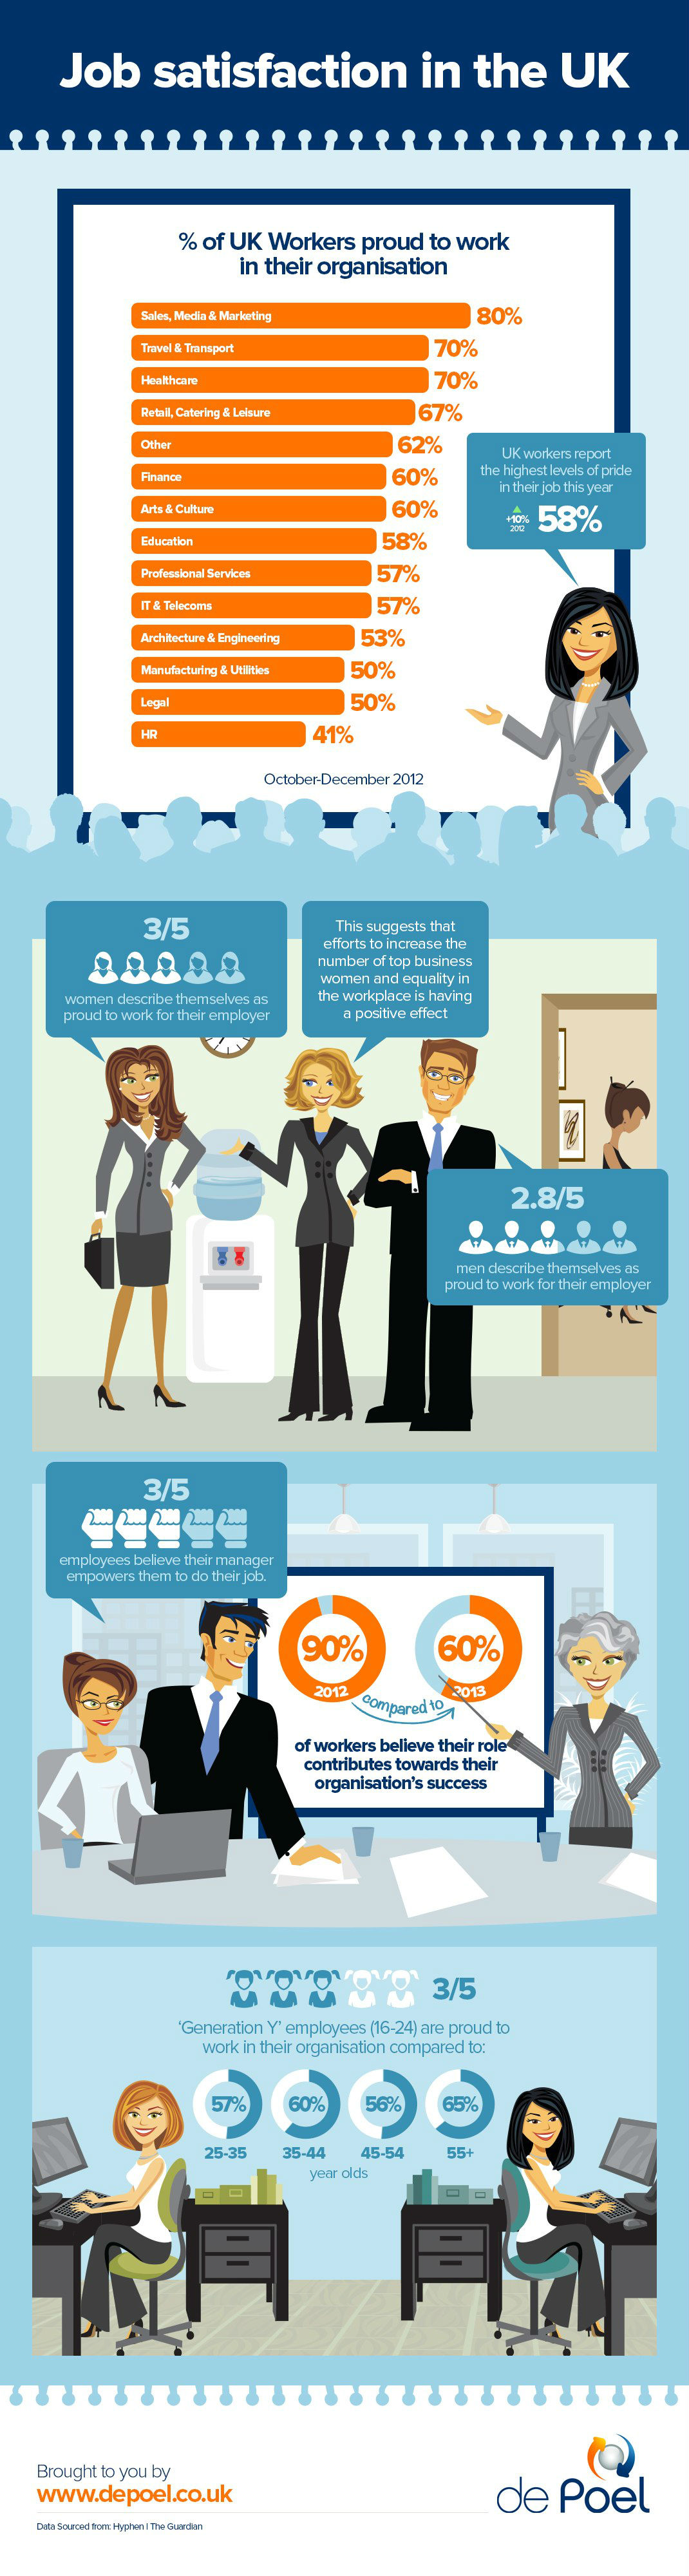 Put Job Satisfaction High On The Agenda [Infographic]